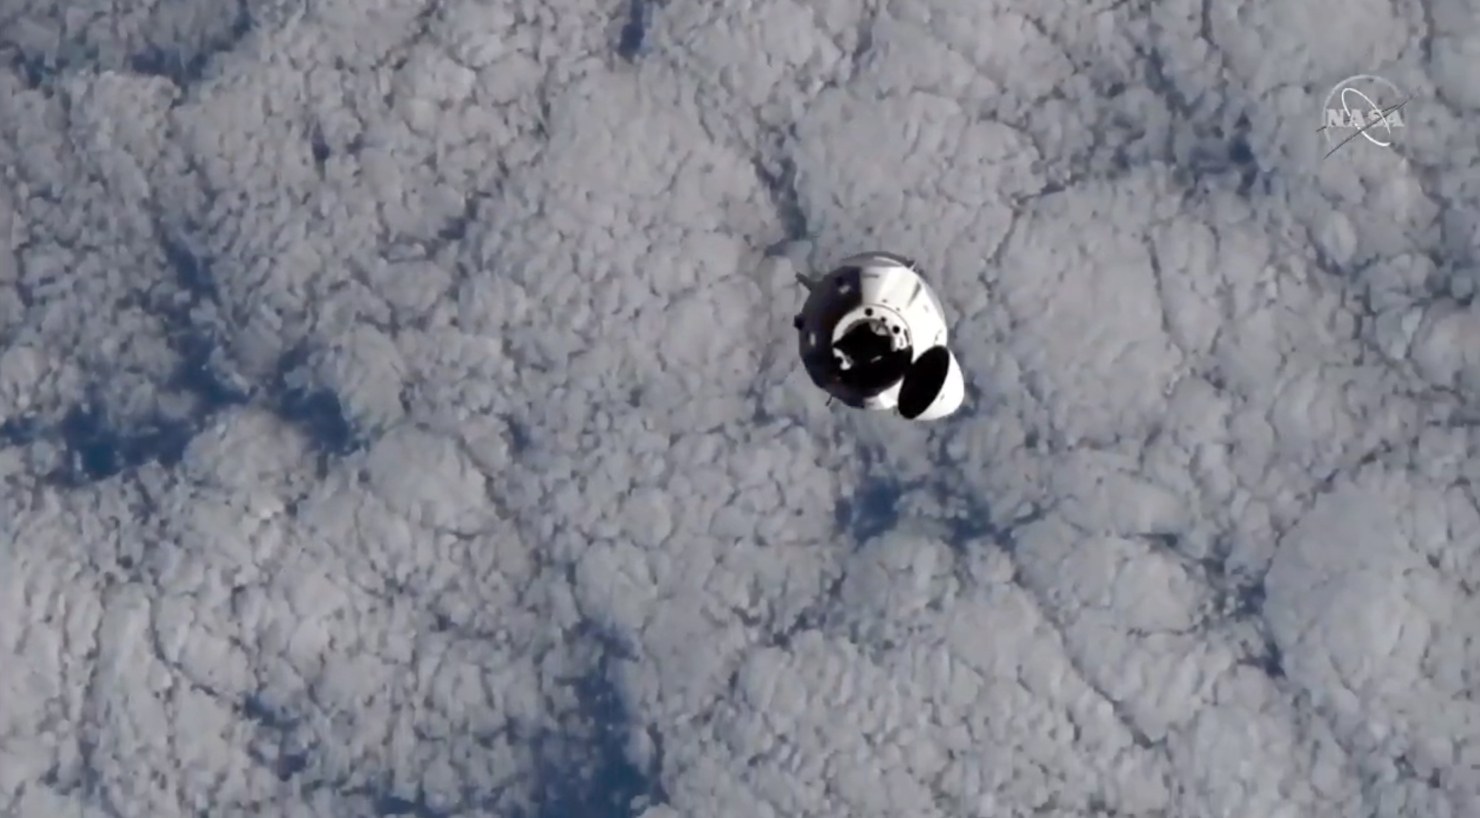 Crew Dragon from ISS view